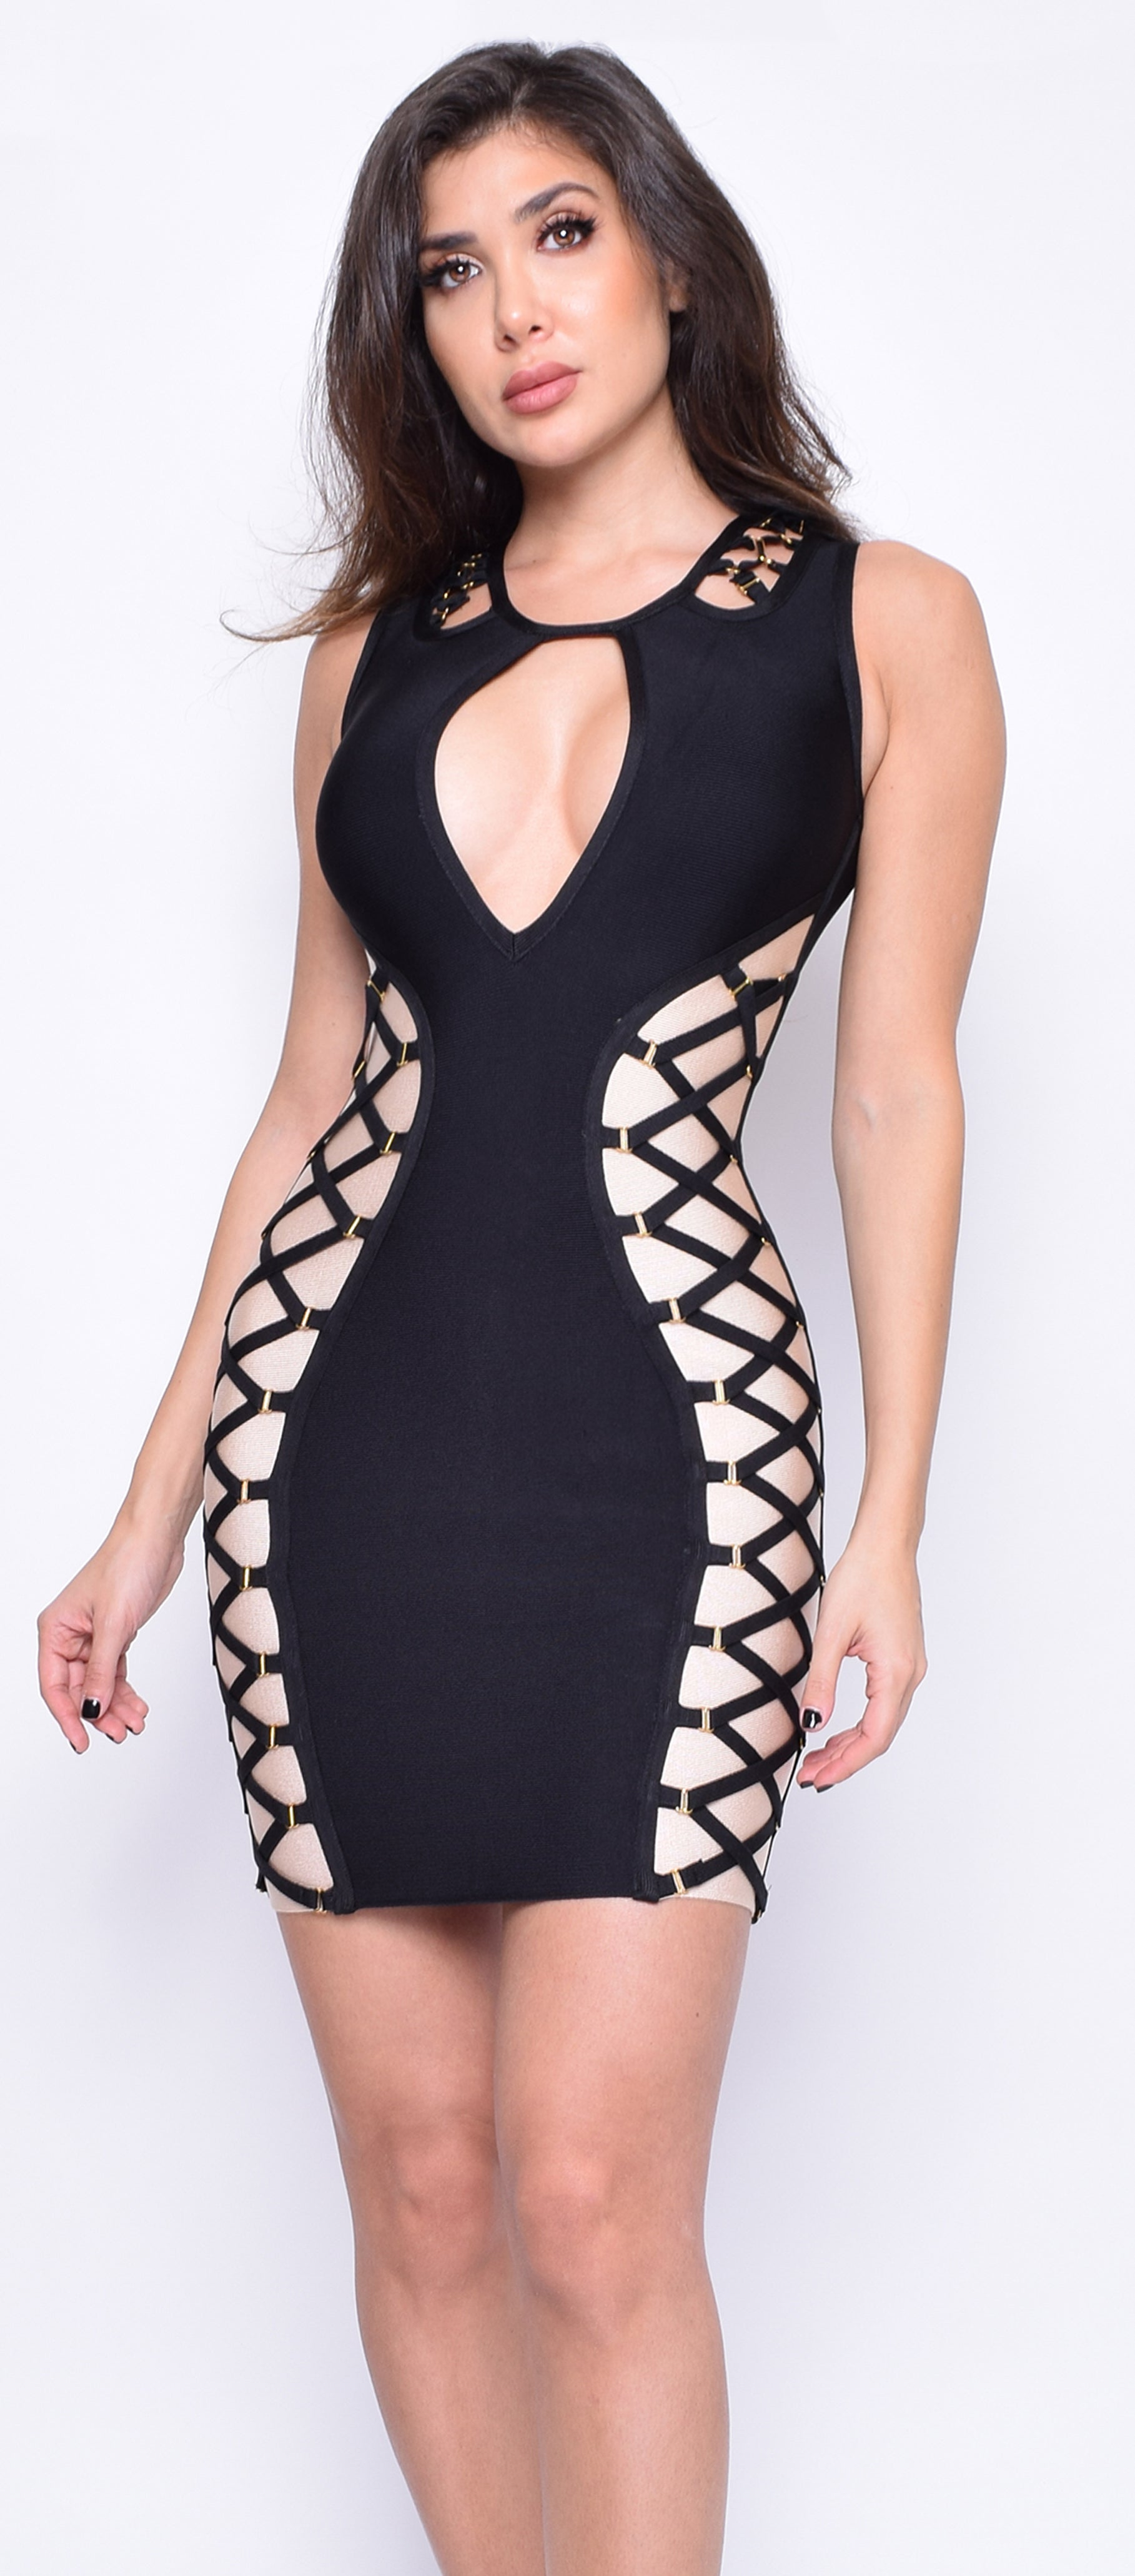 Leonora Black Nude Criss Cross Bandage Dress